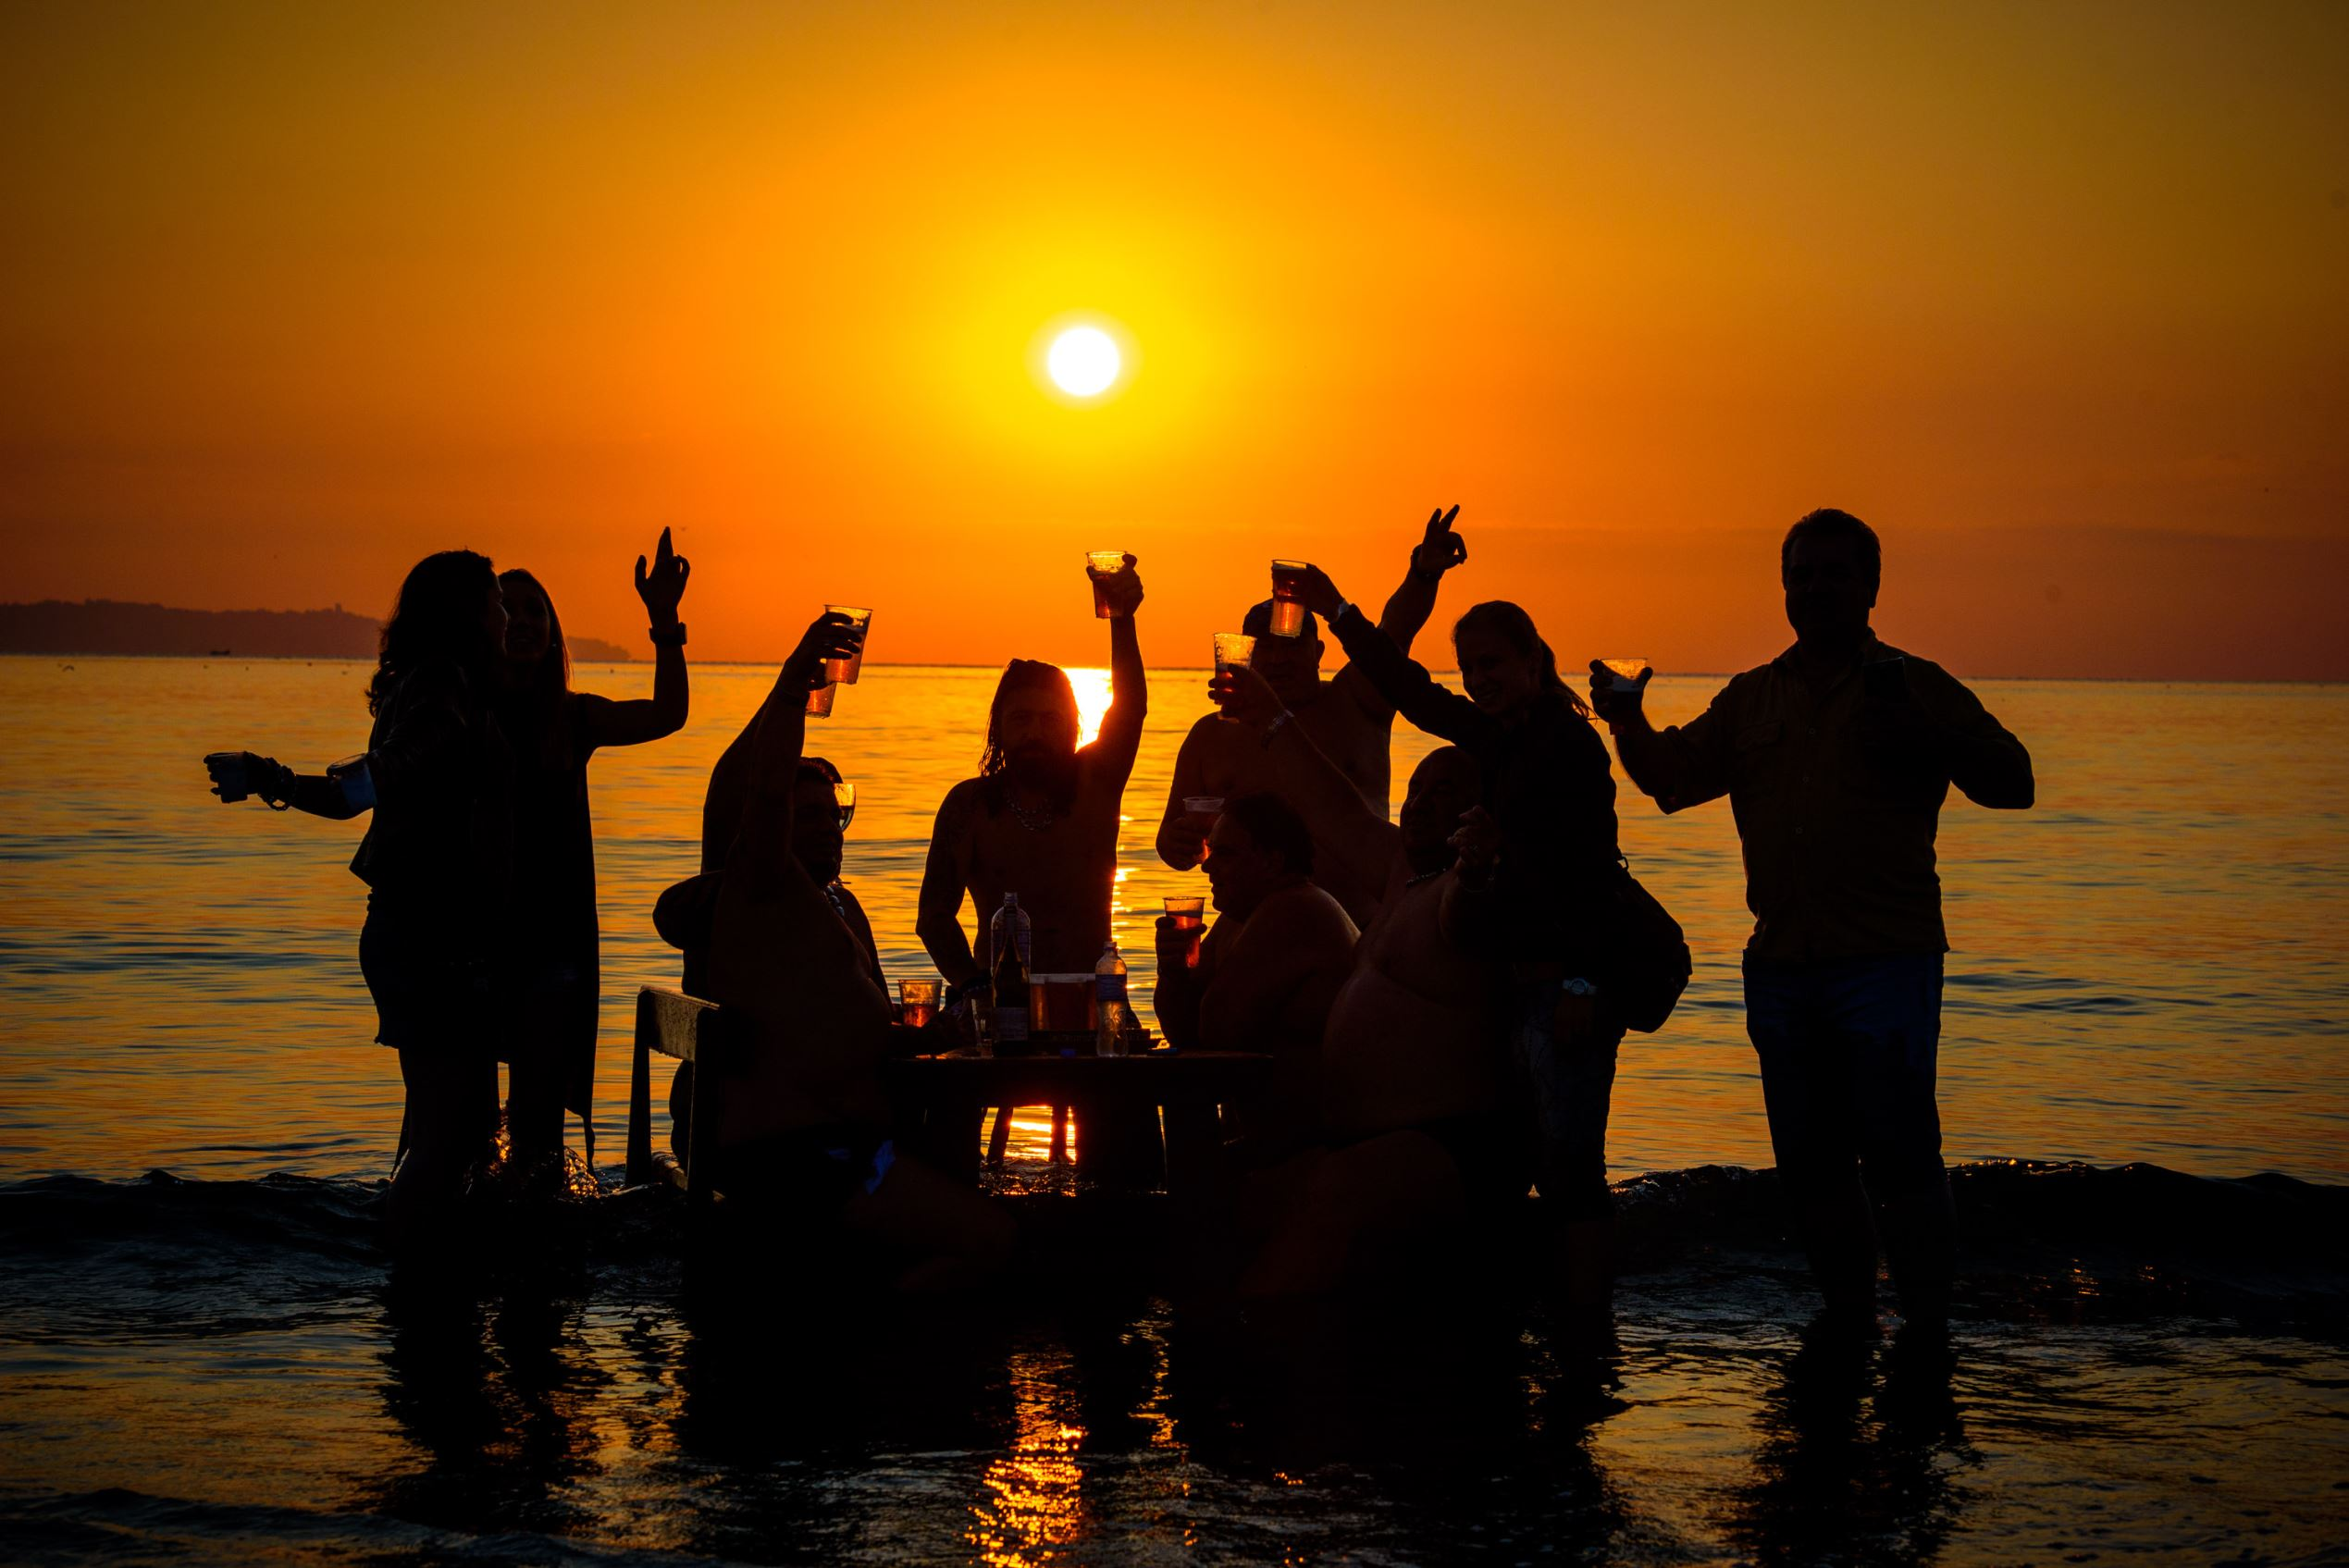 Слайд 63 из 86: Bulgarians celebrate July Morning in Varna, Bulgaria - 01 Jul 2016 Bulgarians greet the sunrise as they swim, play and kiss on the shore of the Black Sea town of Varna